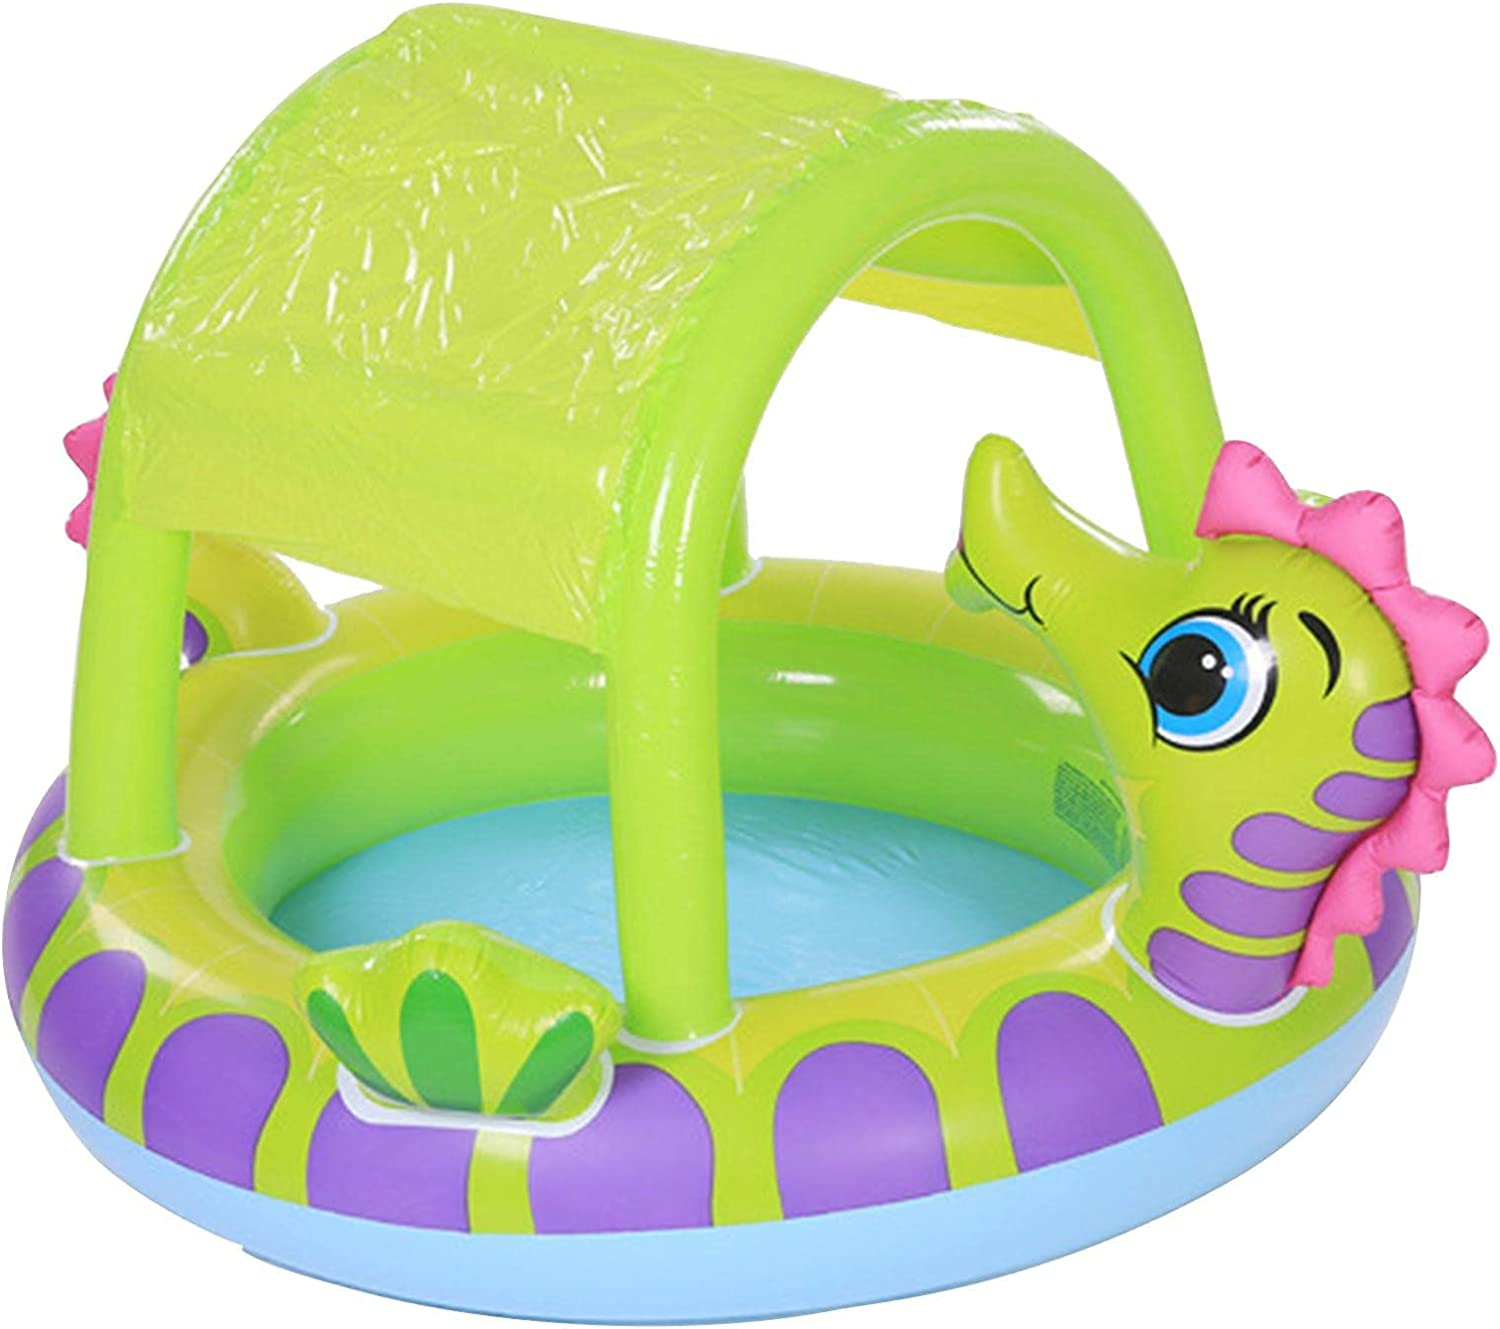 LIXINGX Baby Swimming Pool Float with Su Max 50% OFF Free Max 59% OFF